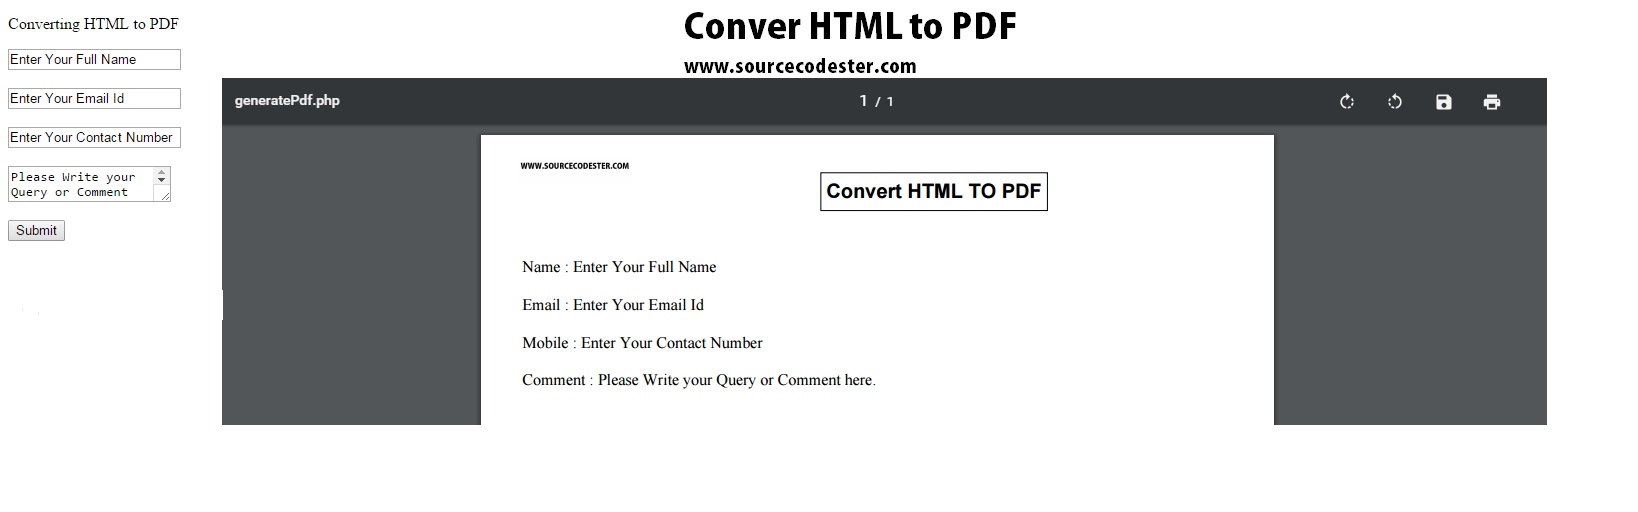 Convert HTML To PDF Using PHP